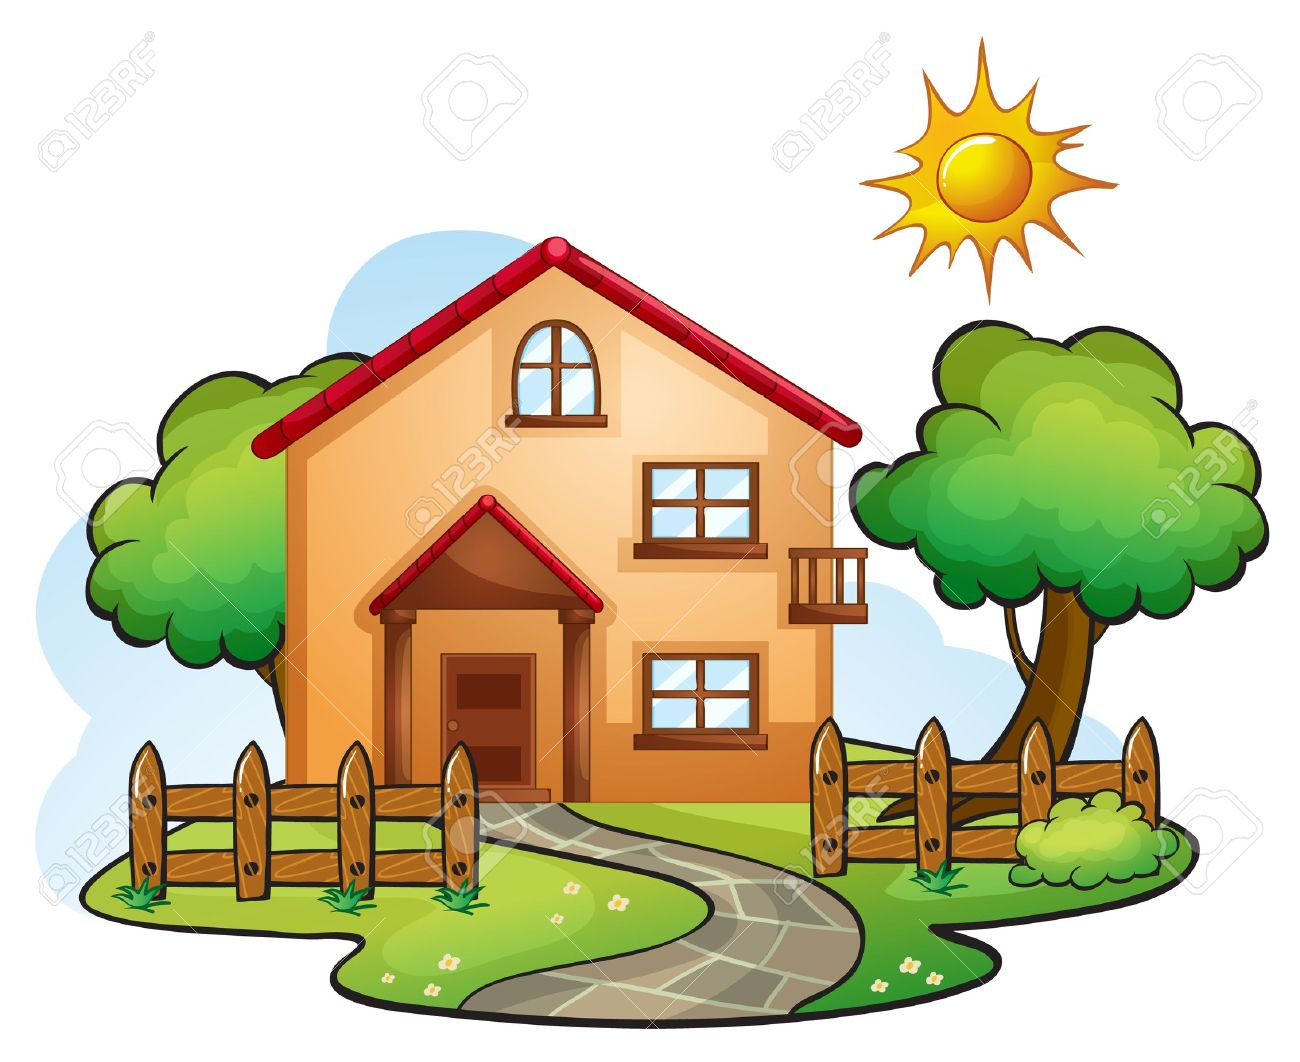 Pictures of houses cartoon